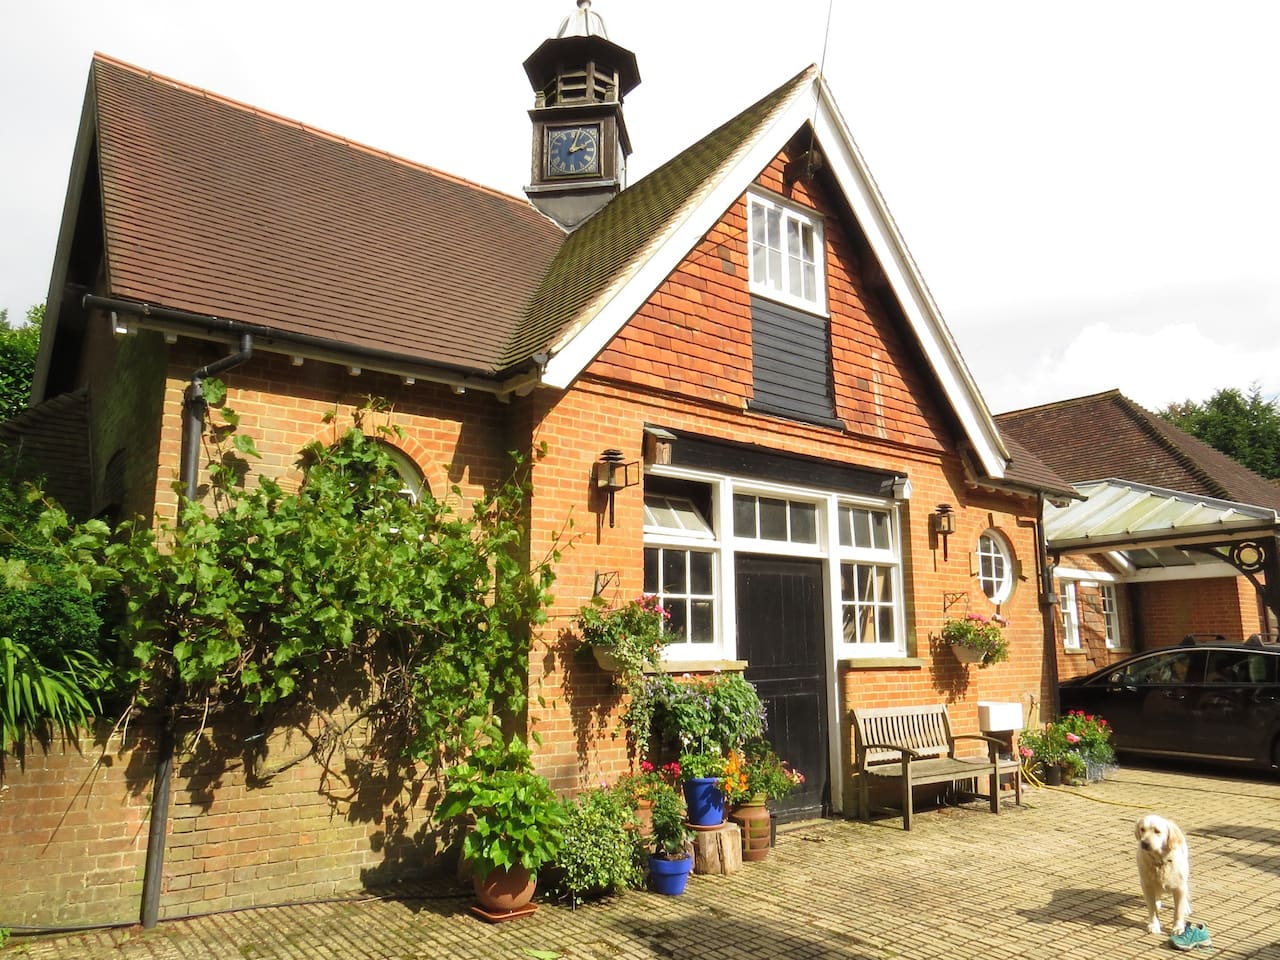 We offer for rent a comfortable, self catering, character cabin on Leith Hill, in the heart of the Surrey Hills.  We welcome cyclists, walkers, bird watchers, or anyone who wishes to retreat here to enjoy our quiet and beautiful surroundings.